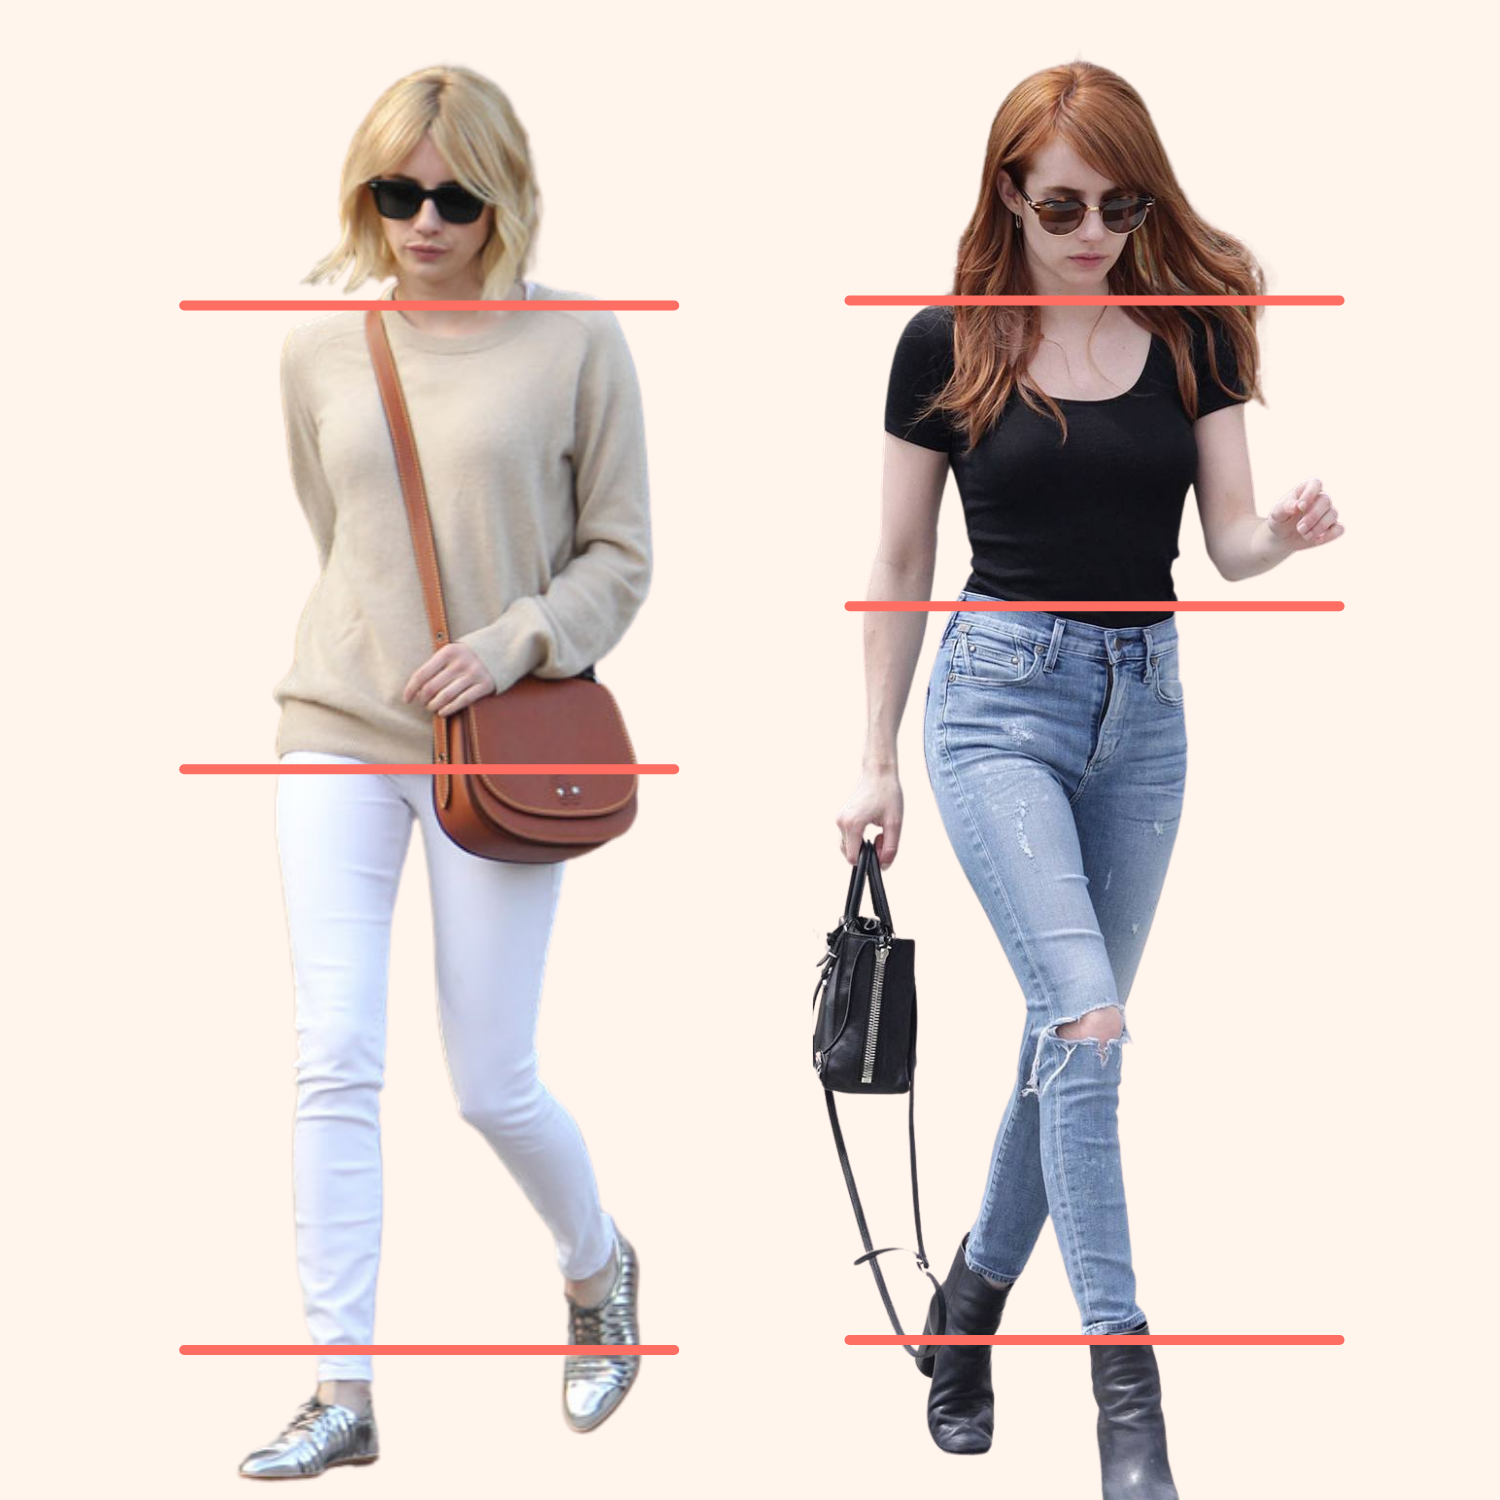 emma roberts rule of thirds